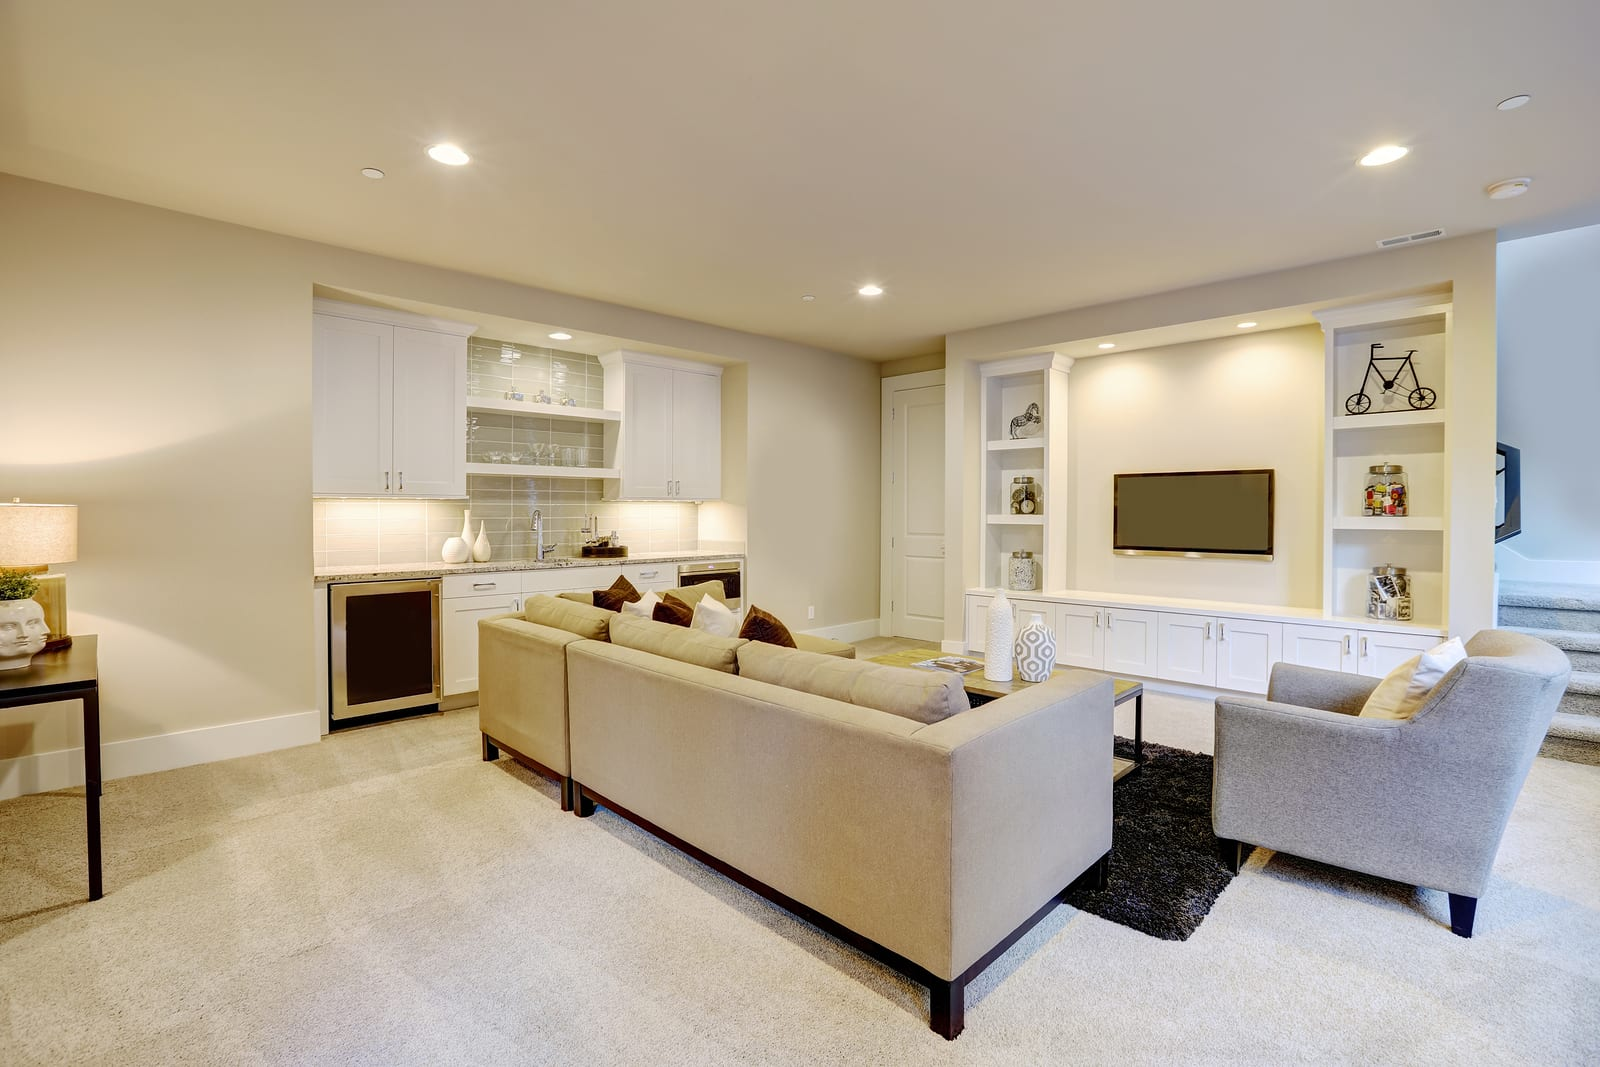 6 Ways to Improve Your Basement